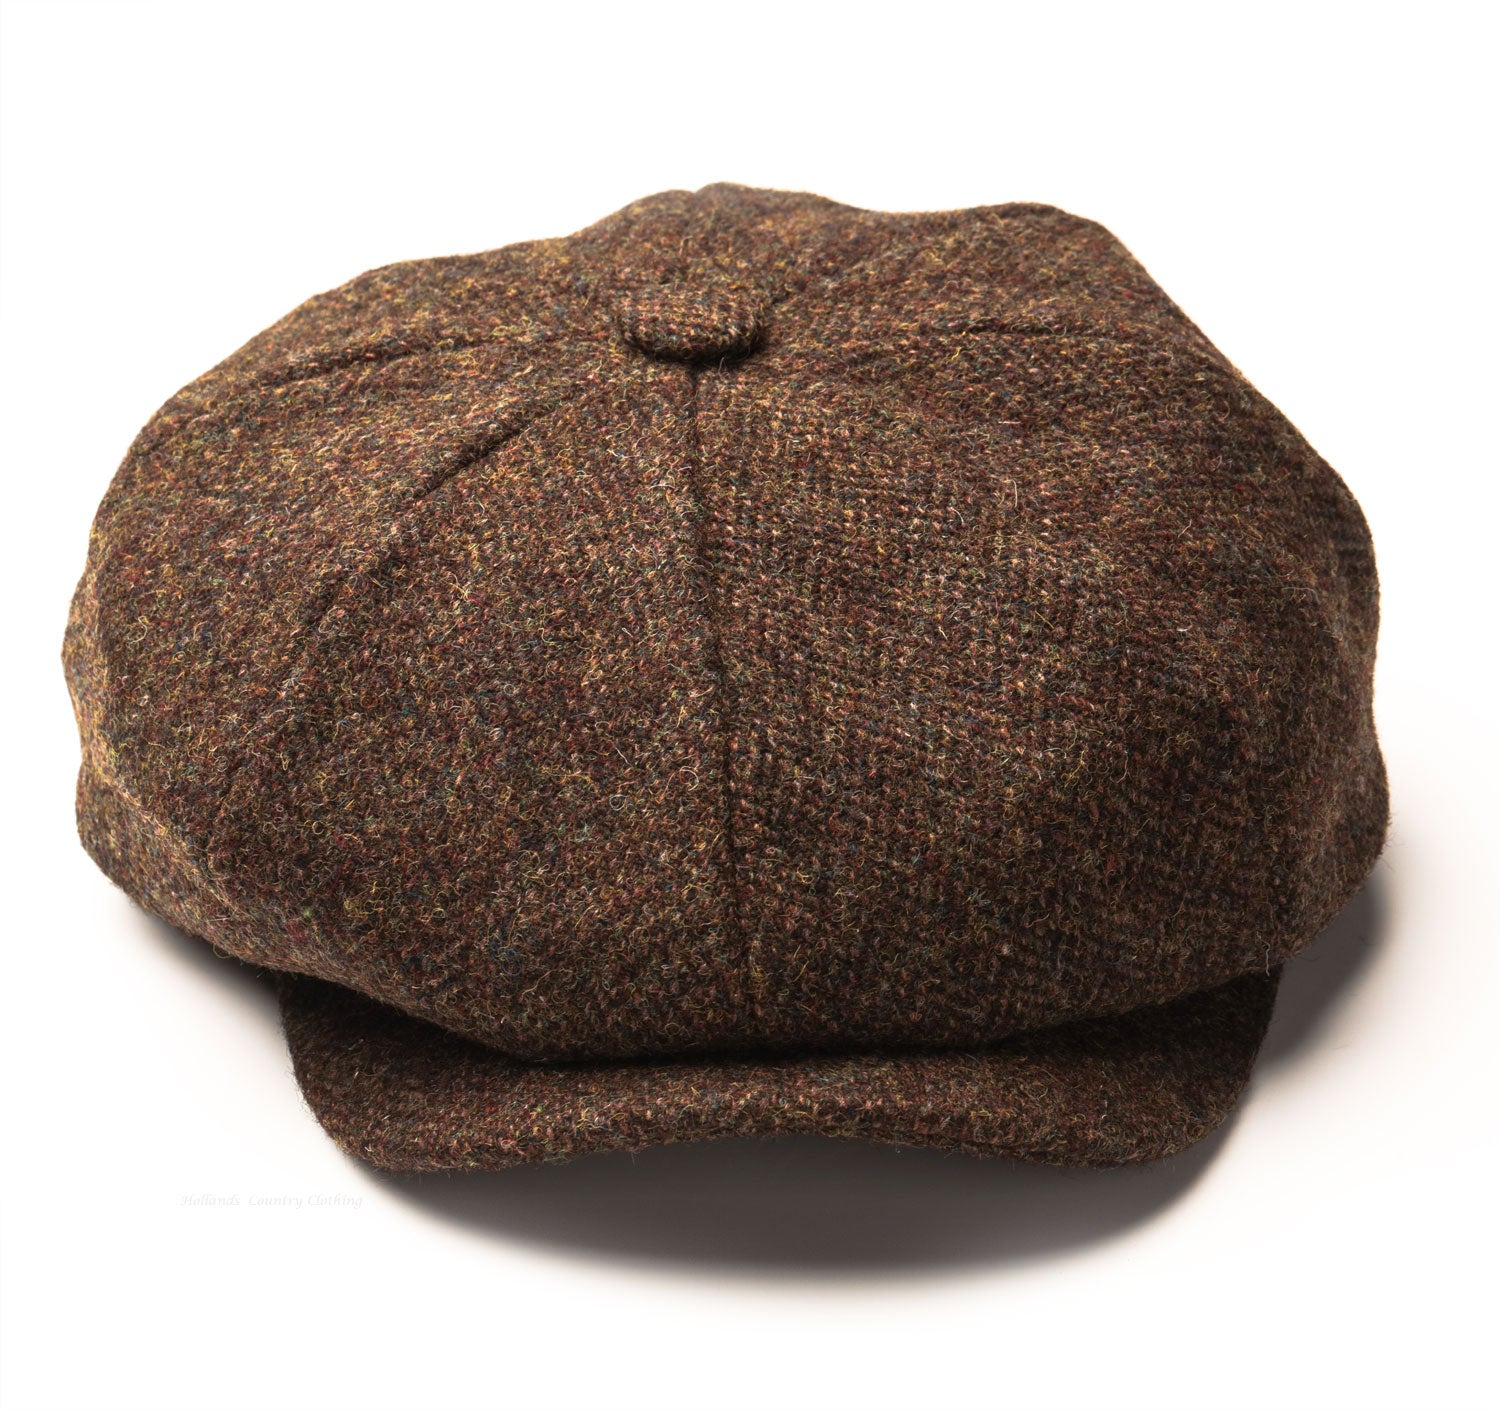 Eight Segment Baggy Button Cap in finest Harris Tweed